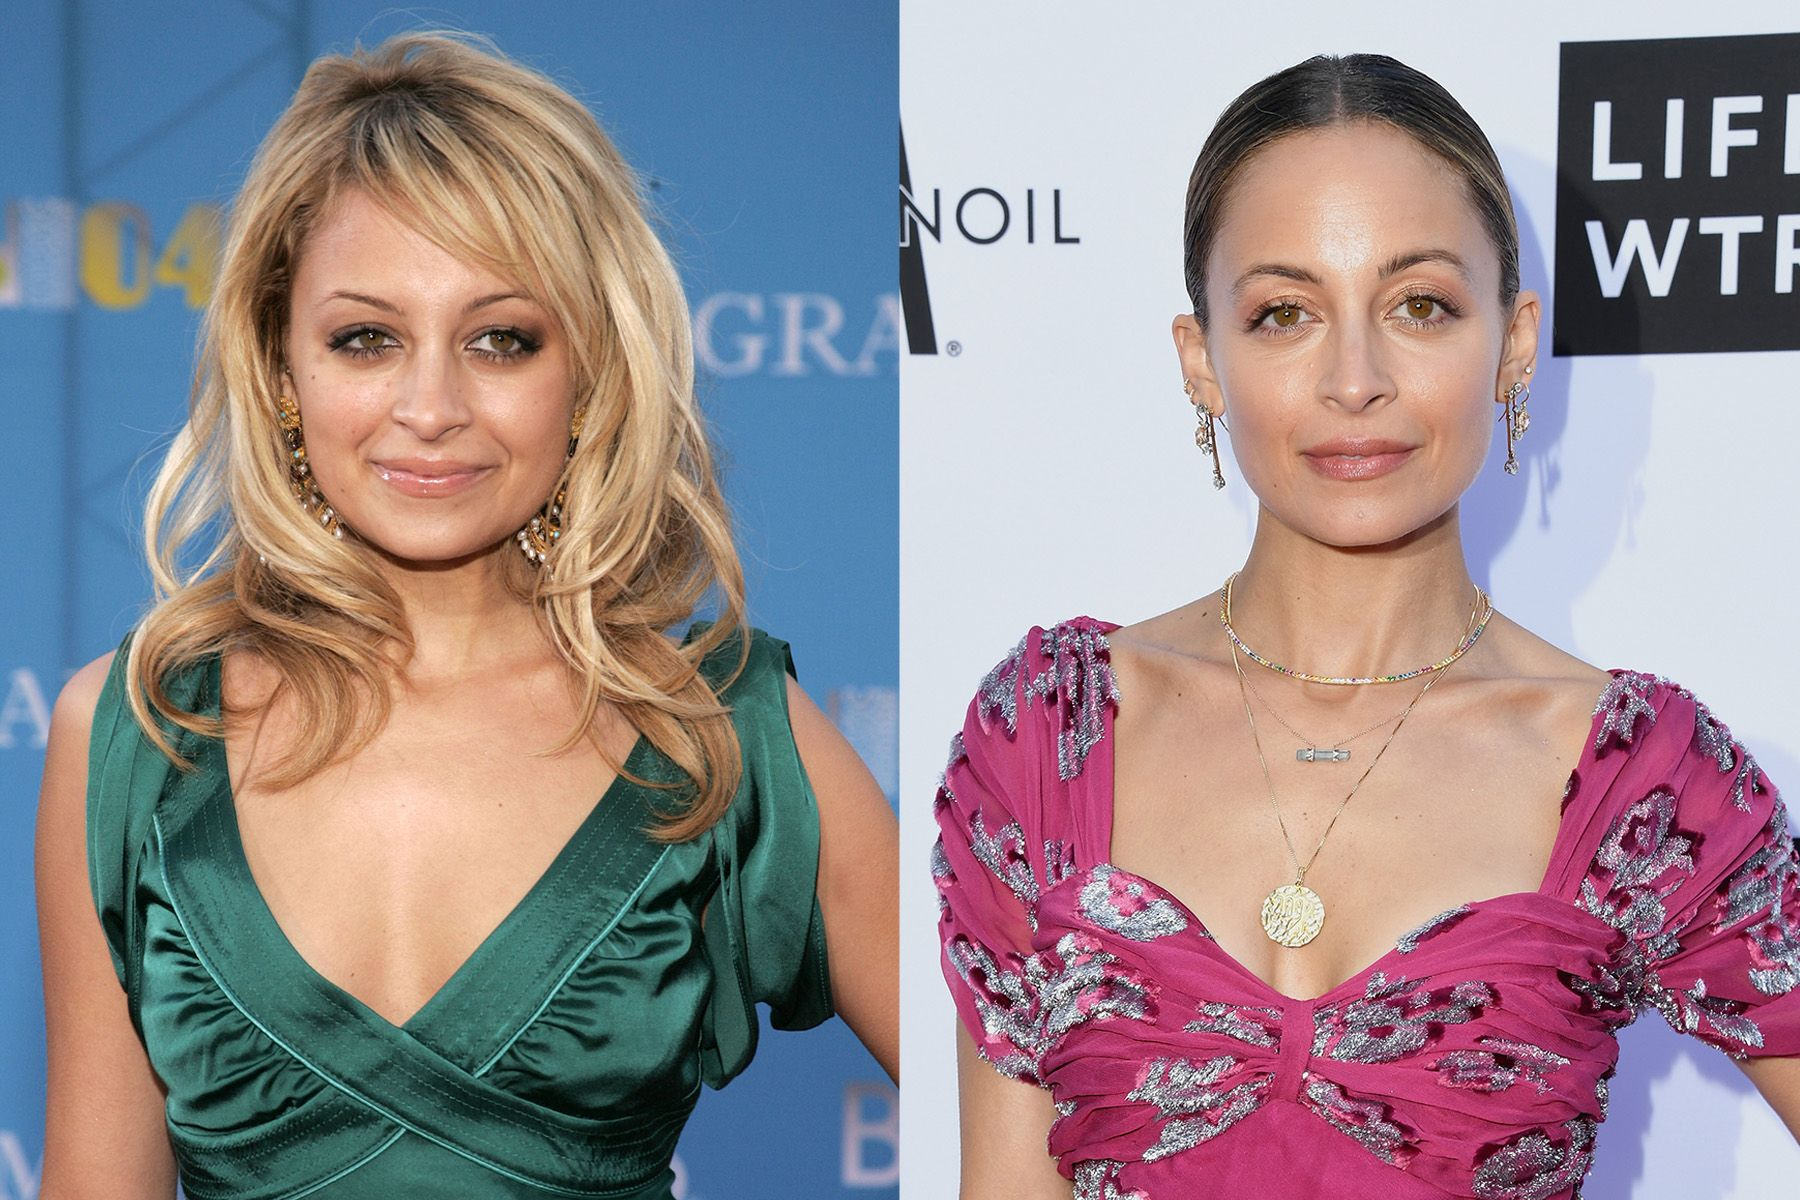 Nicole Richie Back when Nicole was starring on The Simple Life with Paris Hilton, her look was bigger, blonder, and trendier. But in the years since then, not only is her lifestyle dramatically tamer (she's married and a mom of two!), but her beauty has as well.